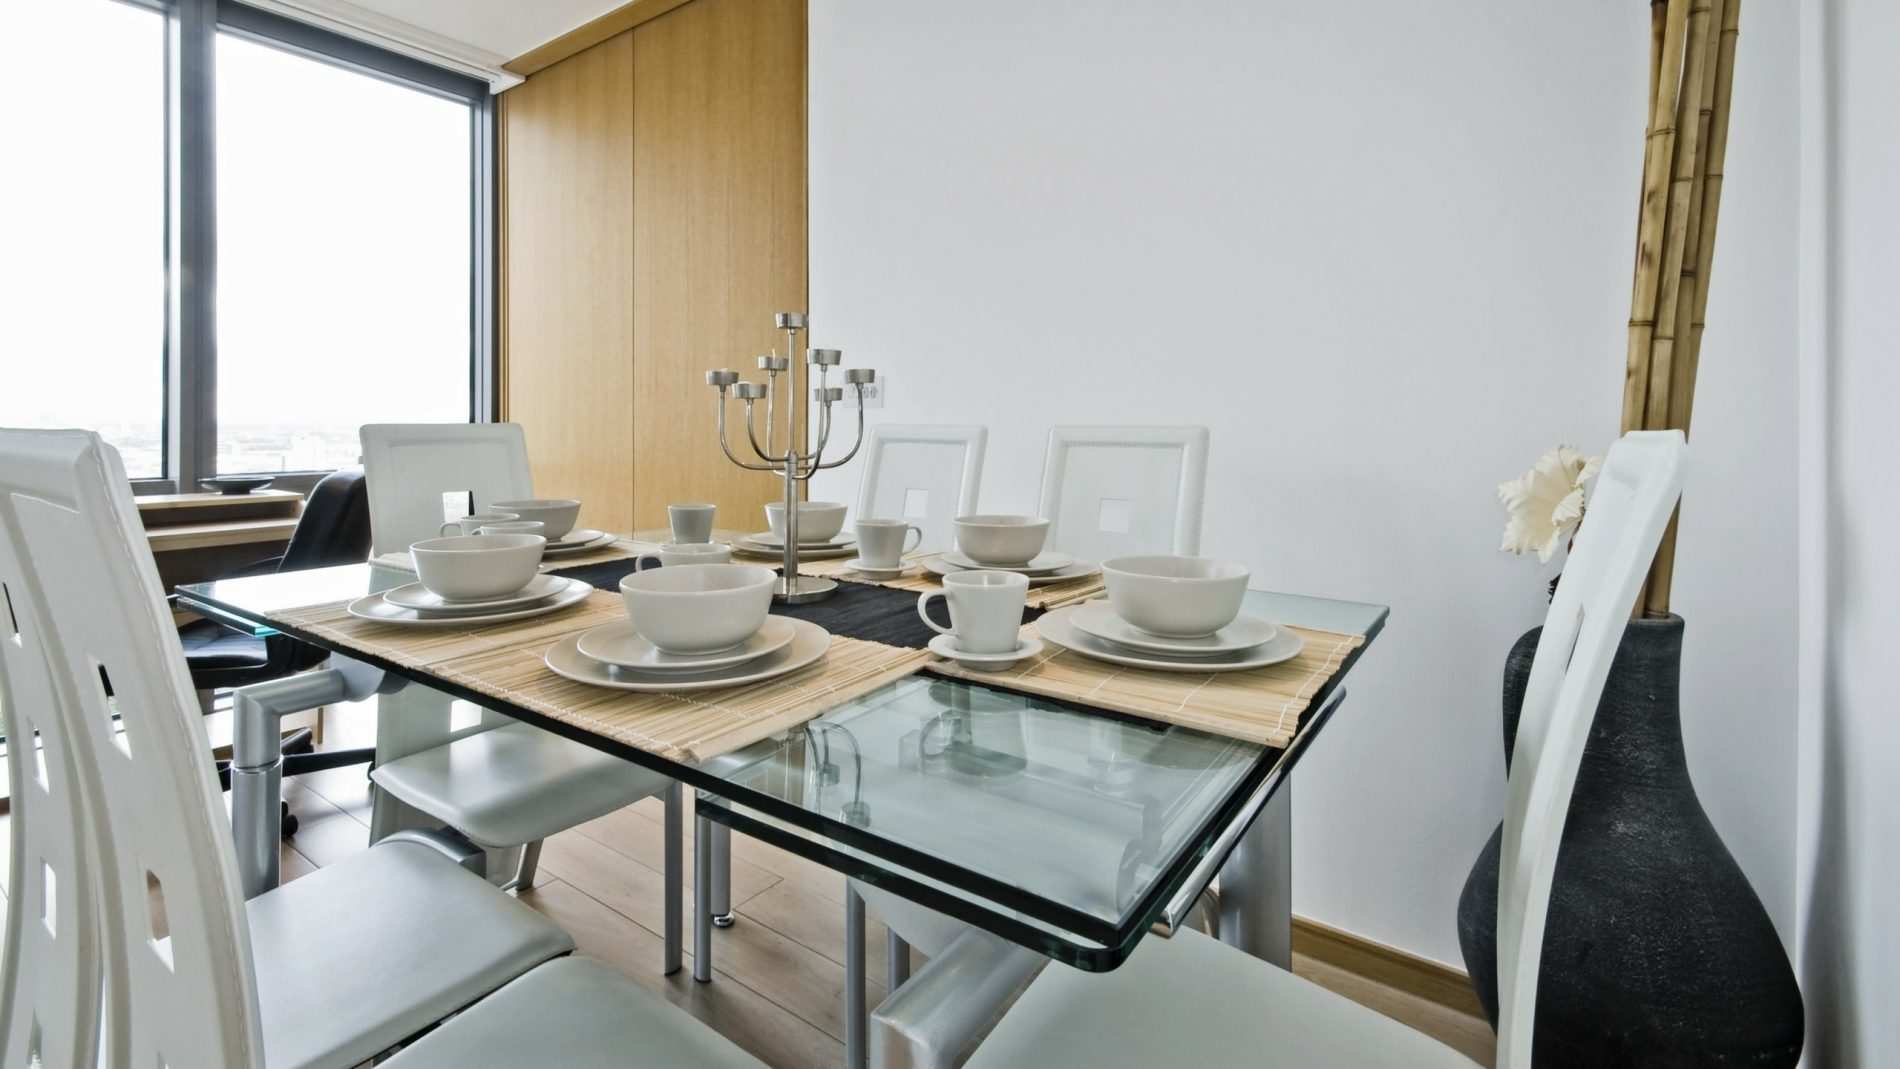 Have Perfect Parties With a Glass Dining Table That Expands